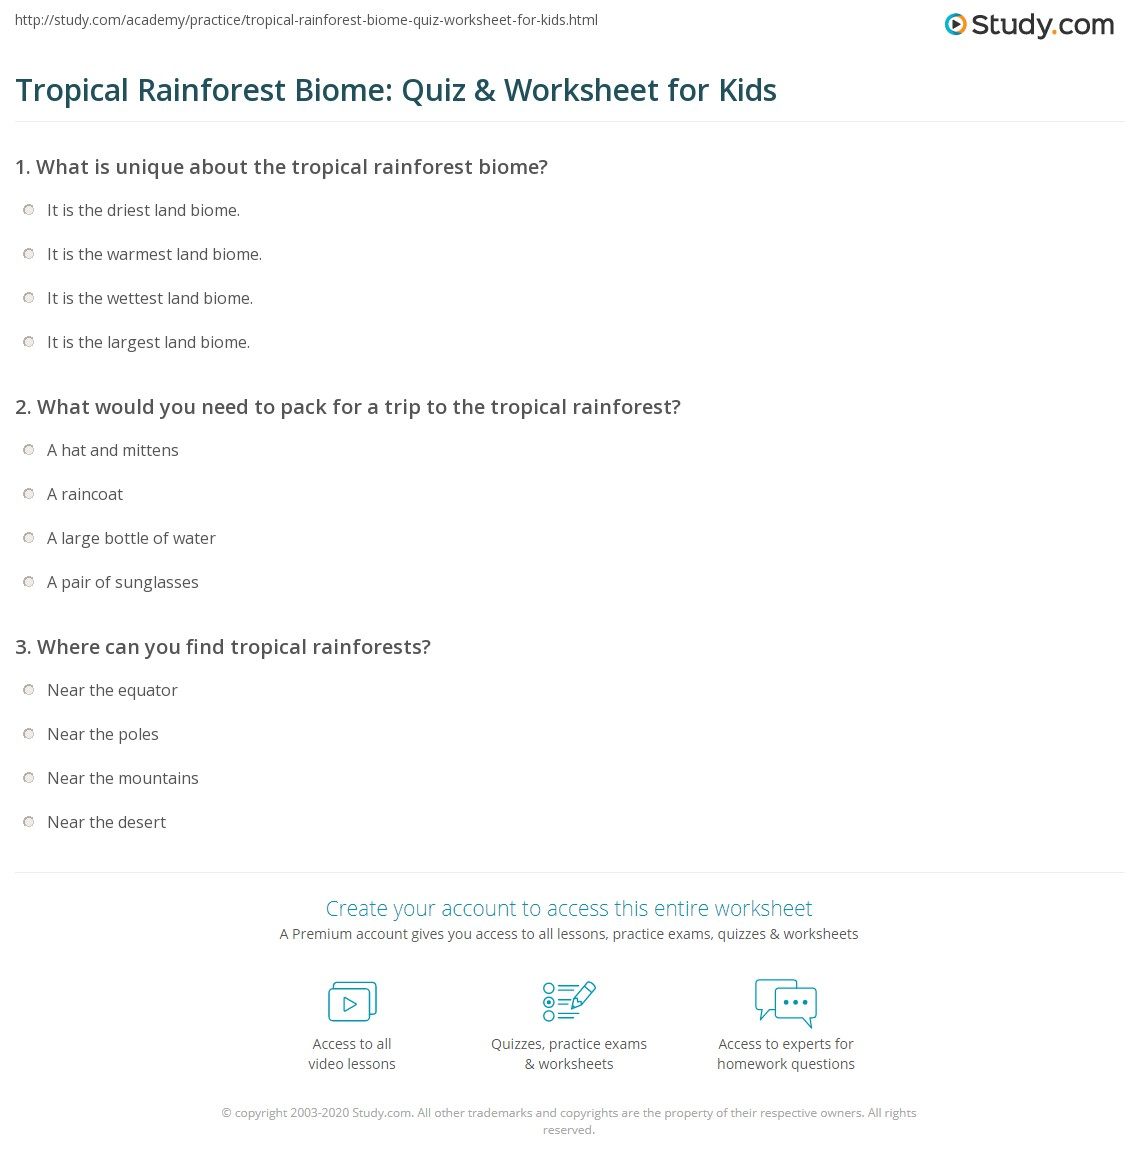 worksheet Tropical Rainforest Worksheet tropical rainforest biome quiz worksheet for kids study com print facts lesson worksheet